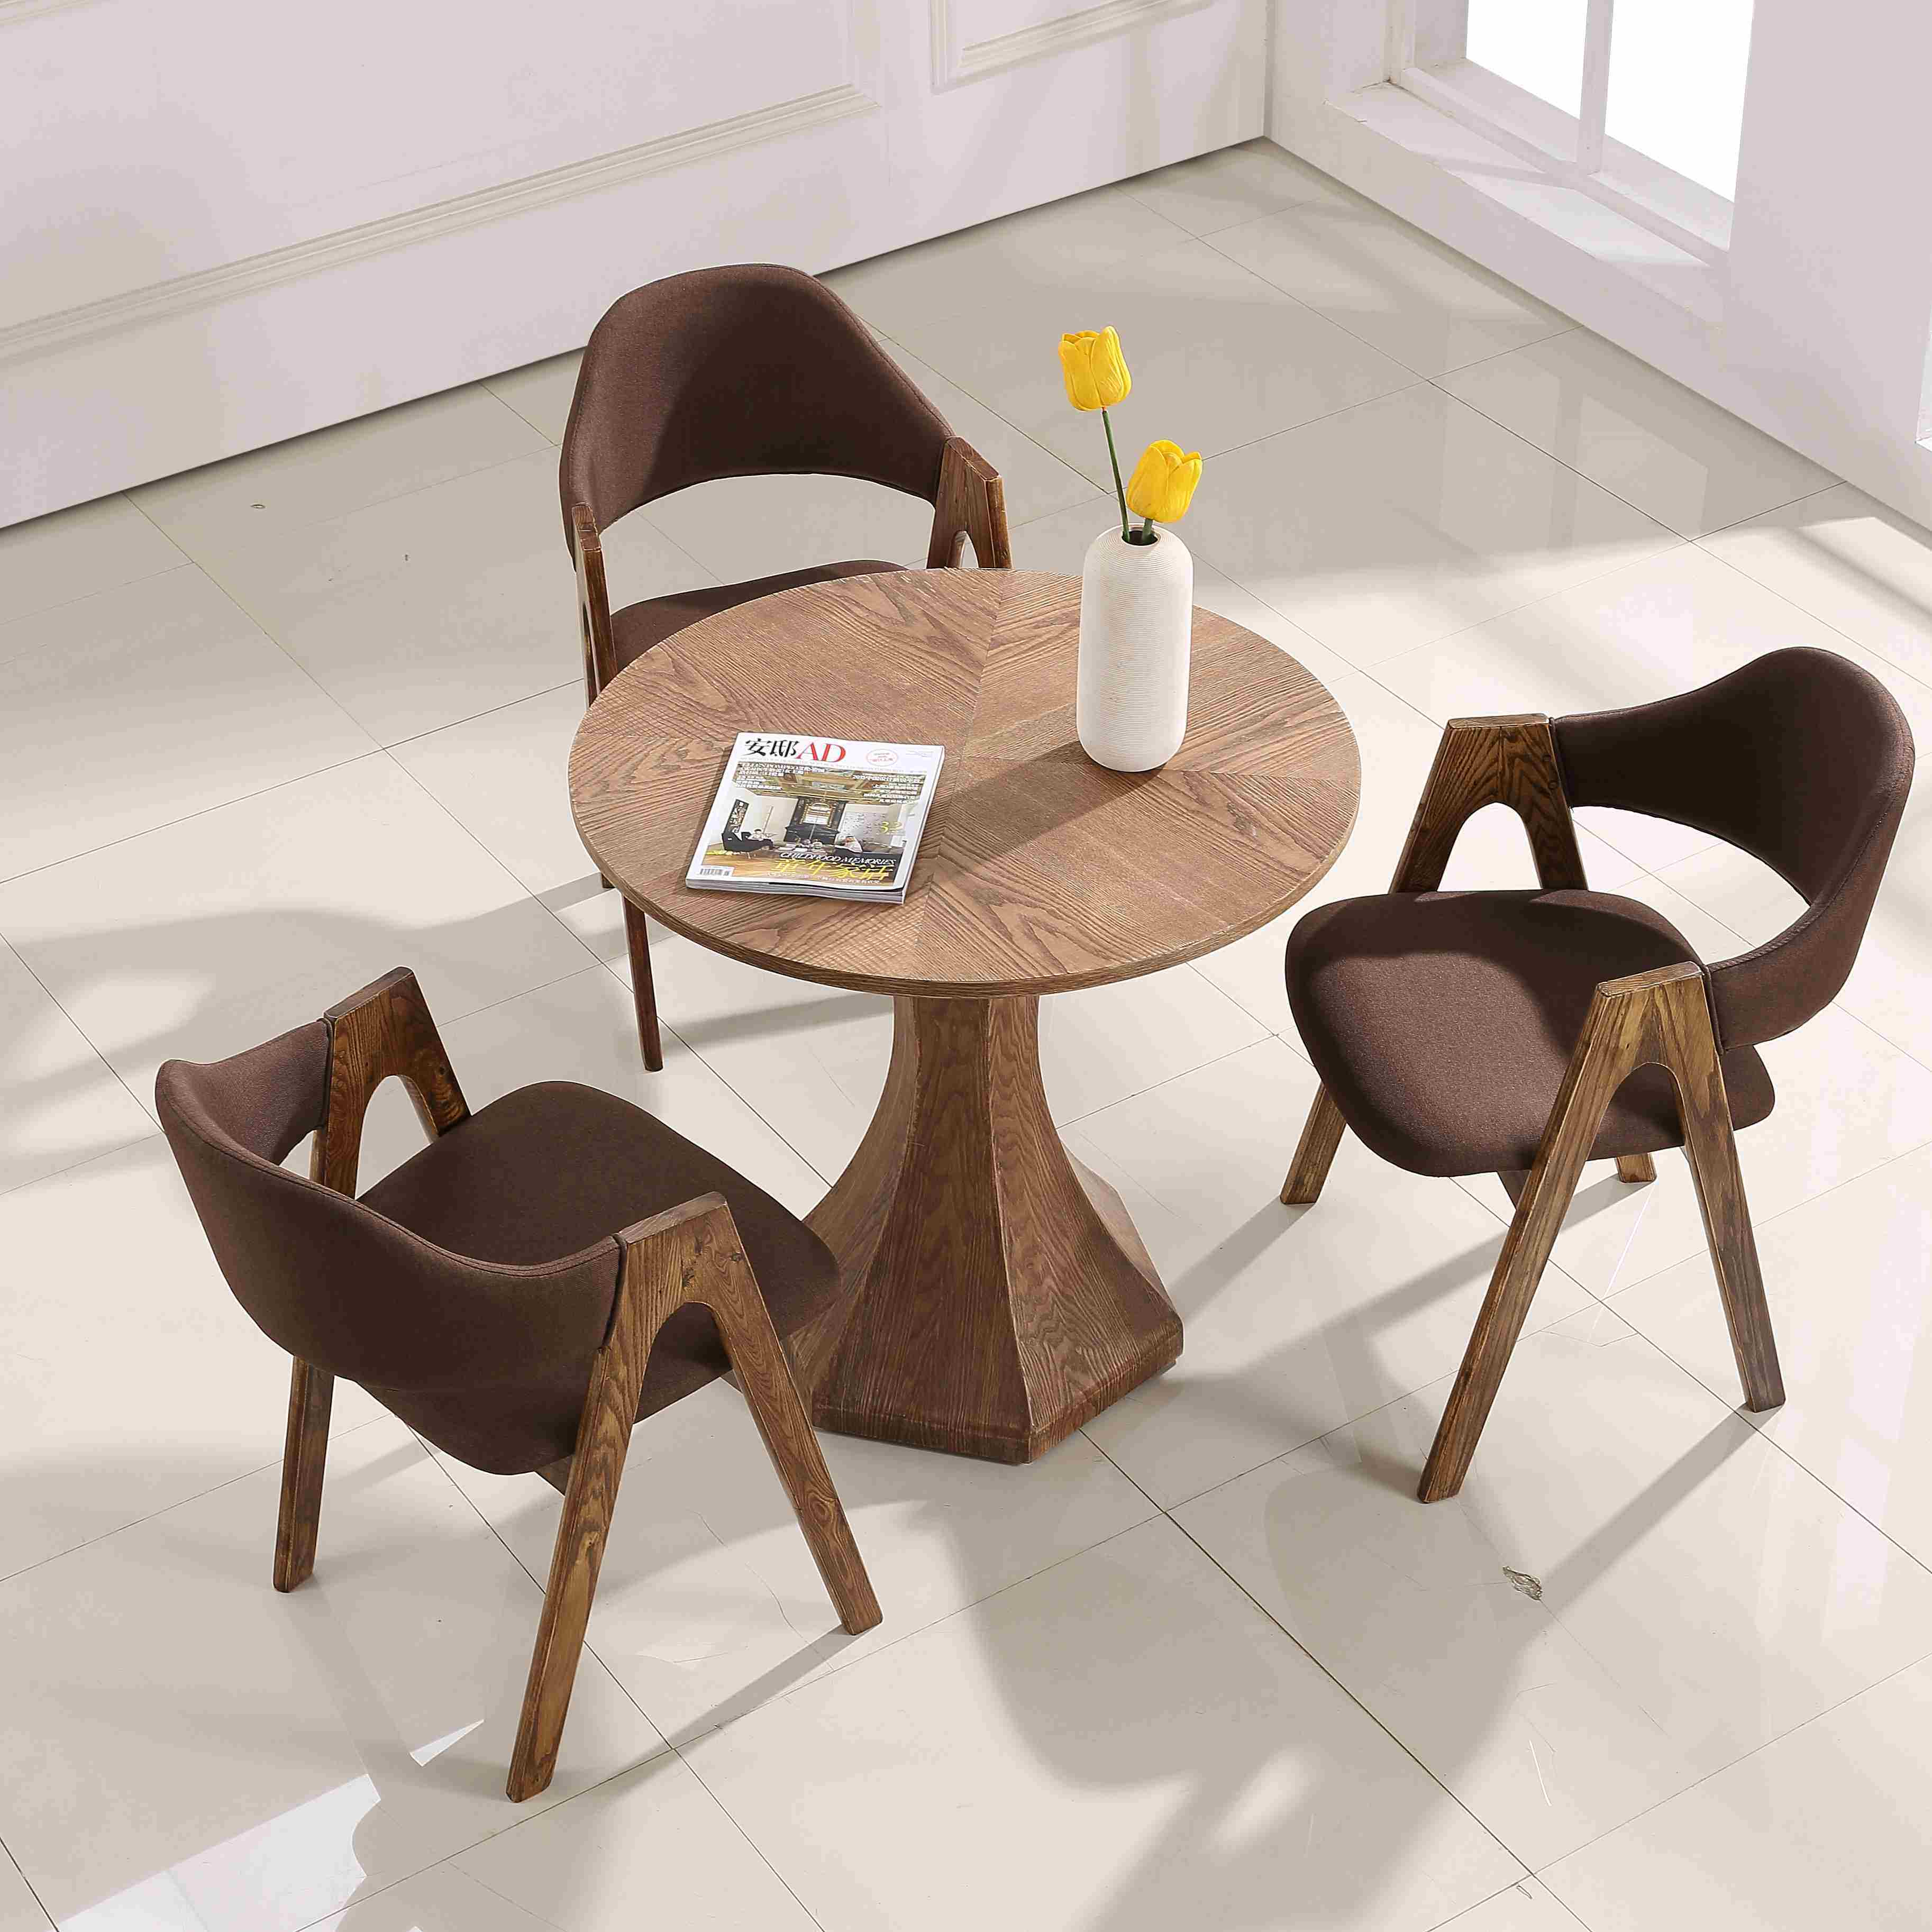 China modern chair dining table with chairs dining room furniture restaurant chair china dining chair restaurant furniture chair